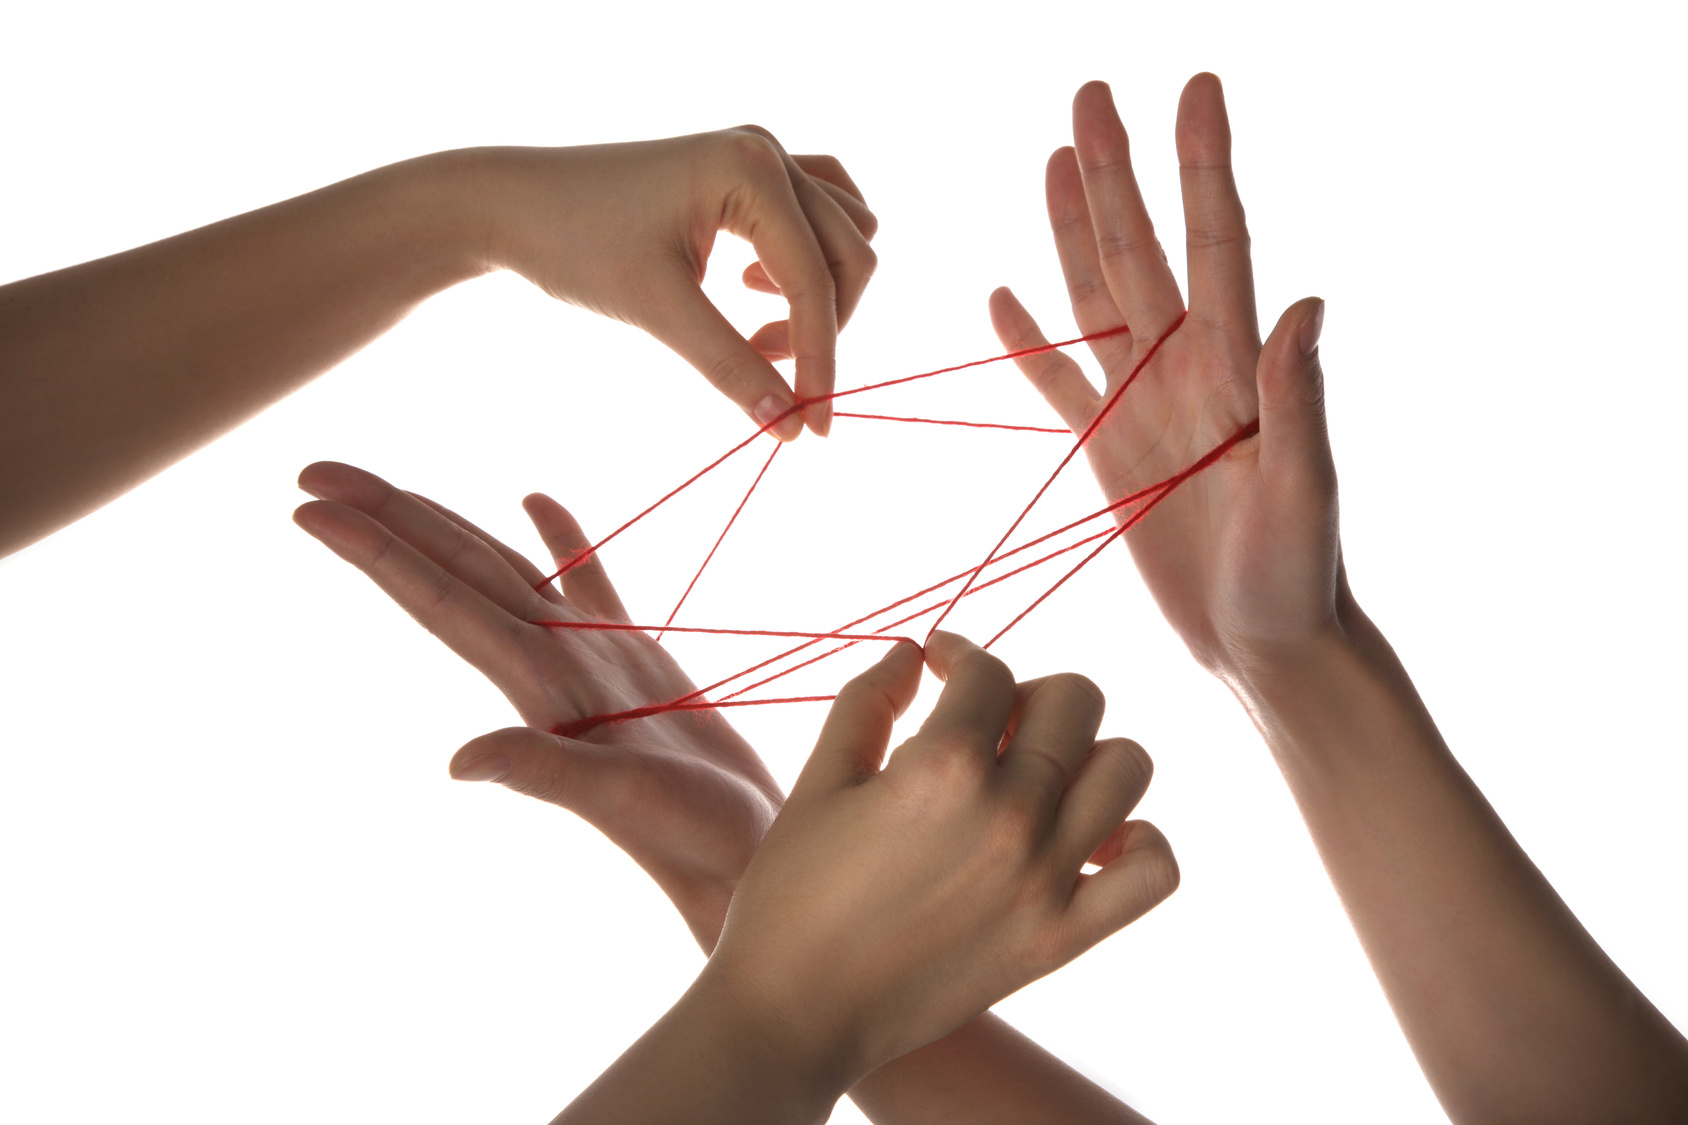 People playing cats cradle game,close-up